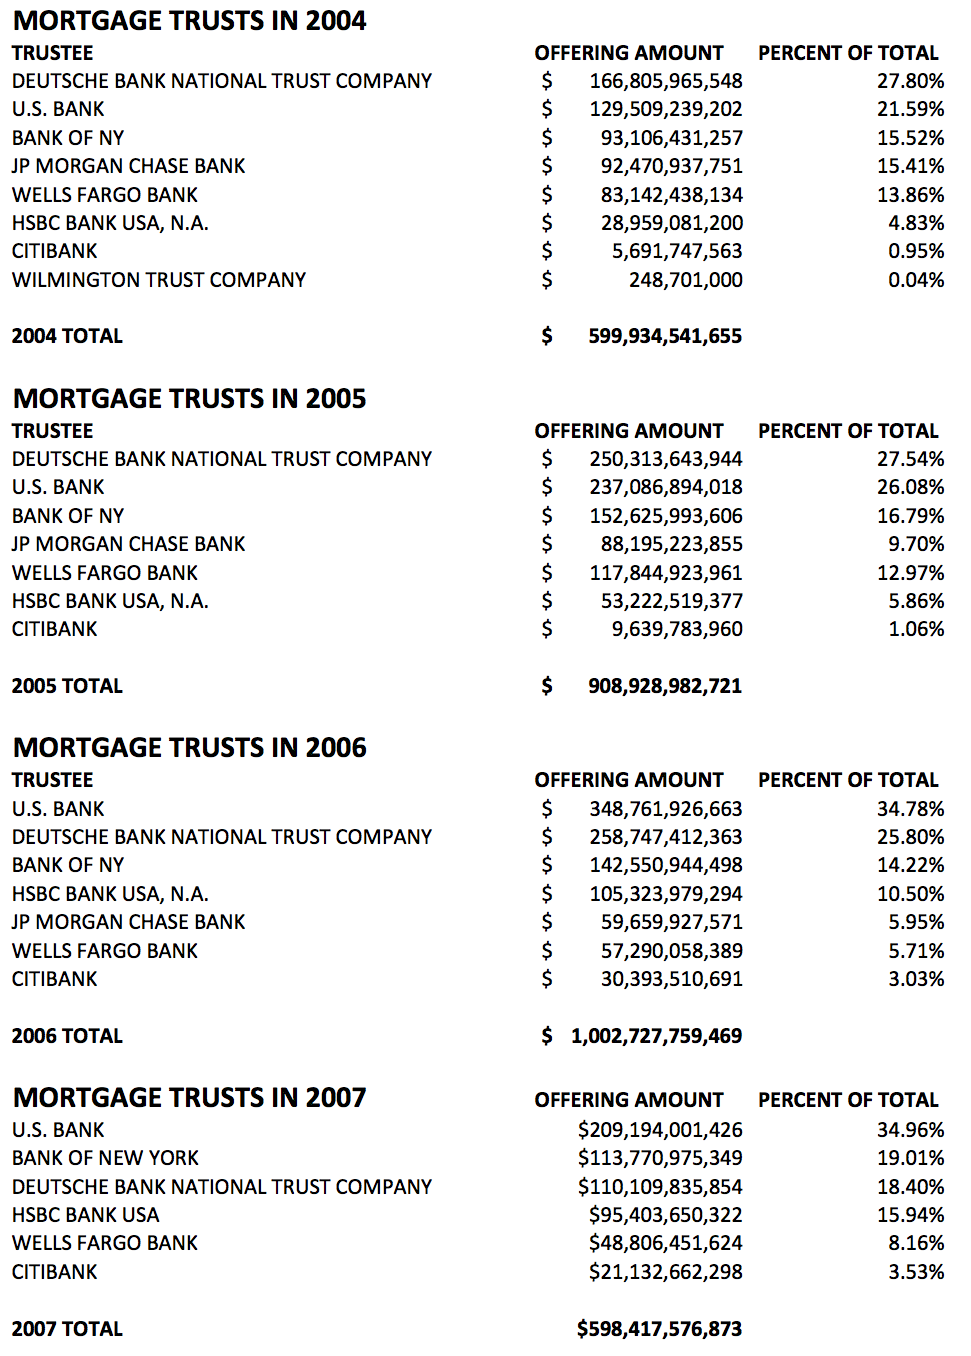 Mortgage-Backed Securities, Loan Documents & The Banks